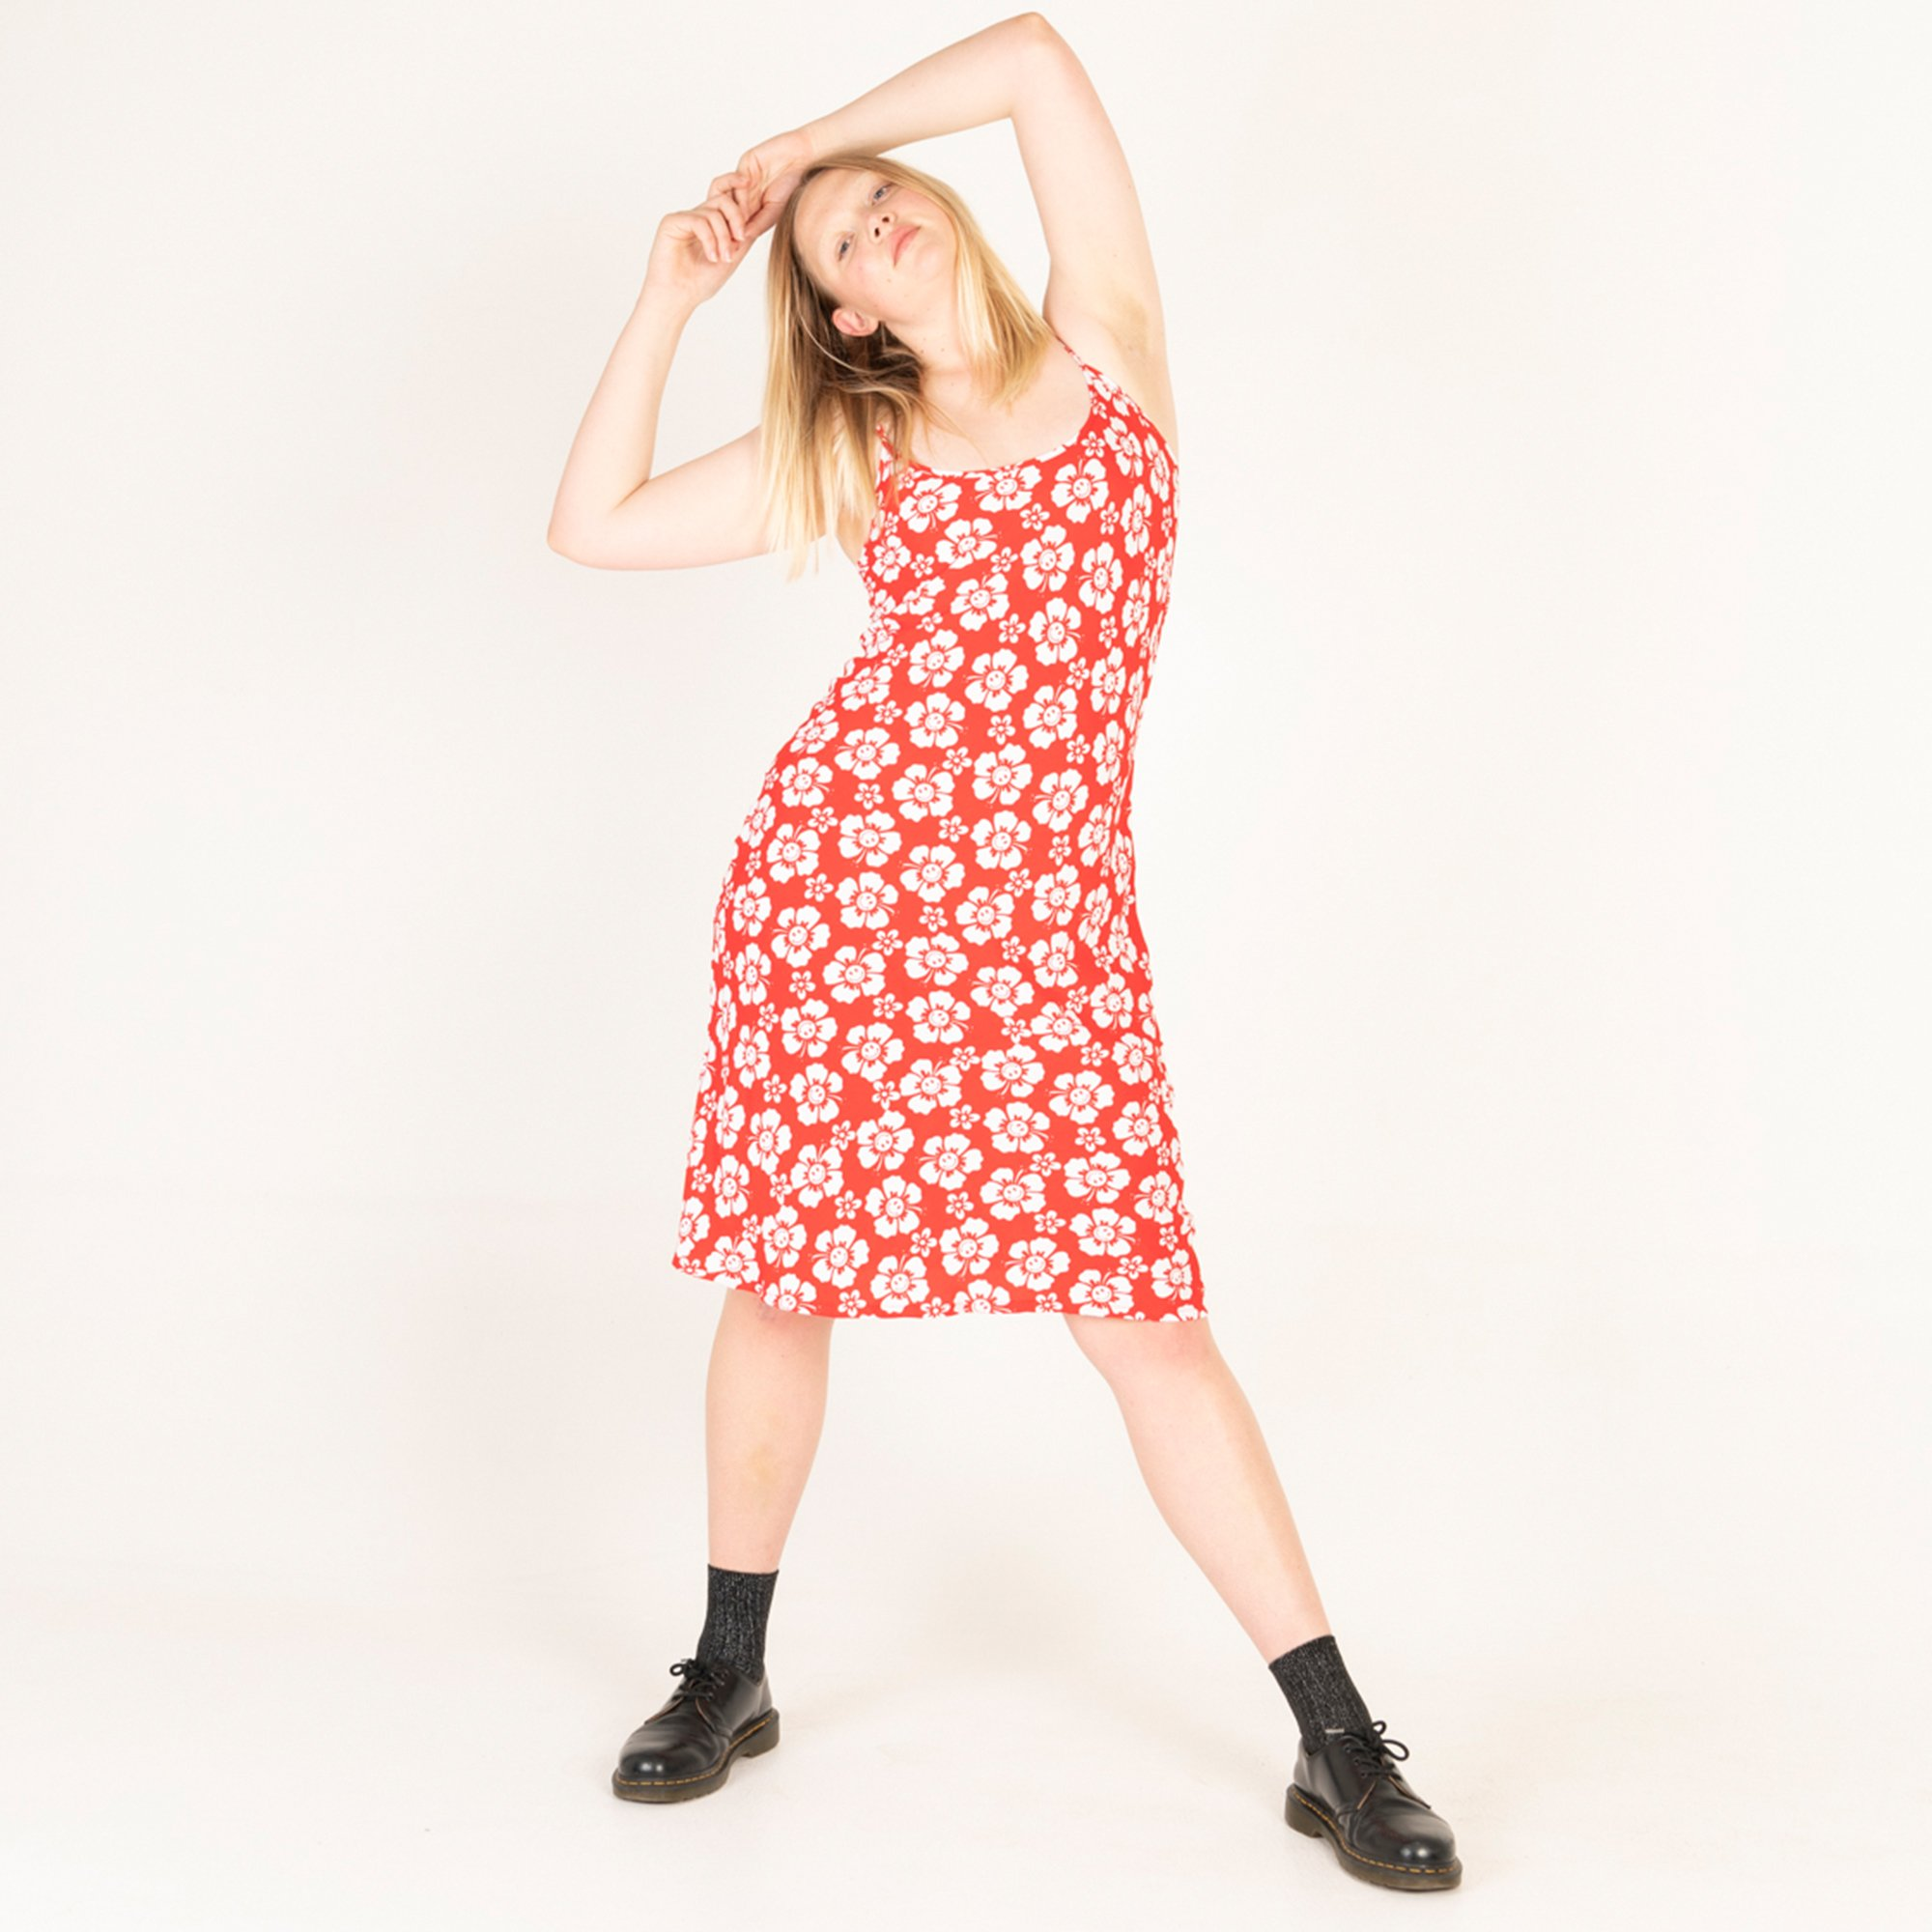 VACATION SLIP DRESS - HAPPY HAWAII - RED by Holiday The Label, available on holidaythelabel.com for AUD215 Hailey Baldwin Dress Exact Product